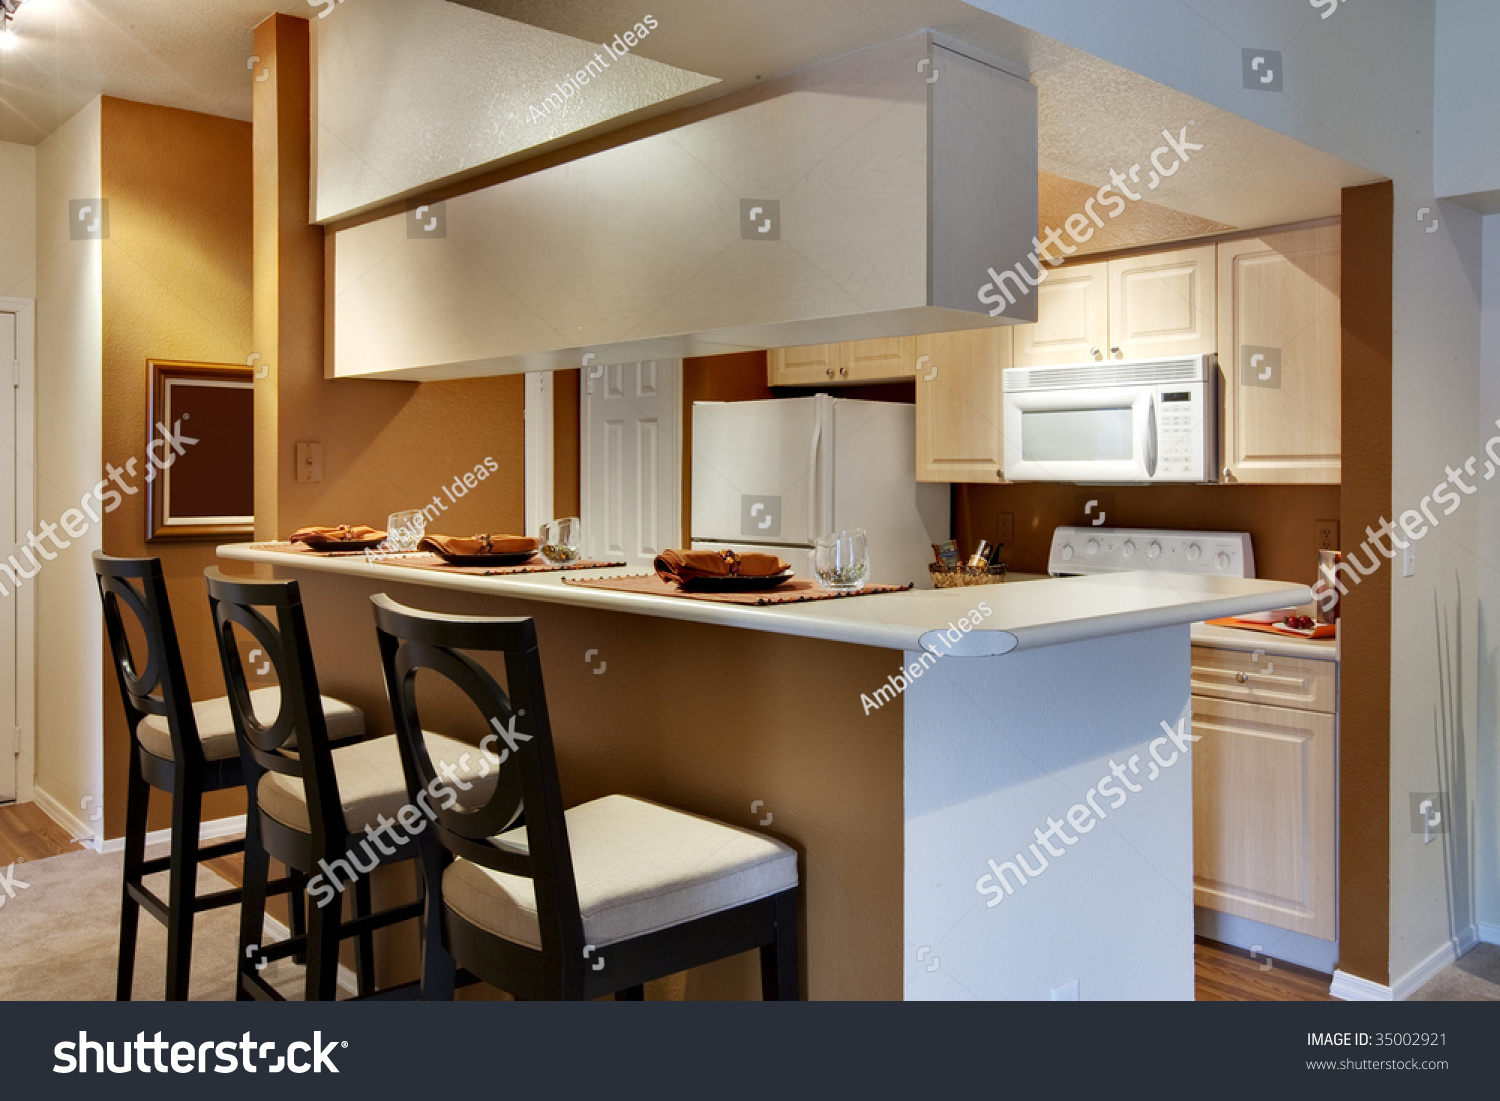 Kitchen Area Of Apartment With High Bar Style Countertop